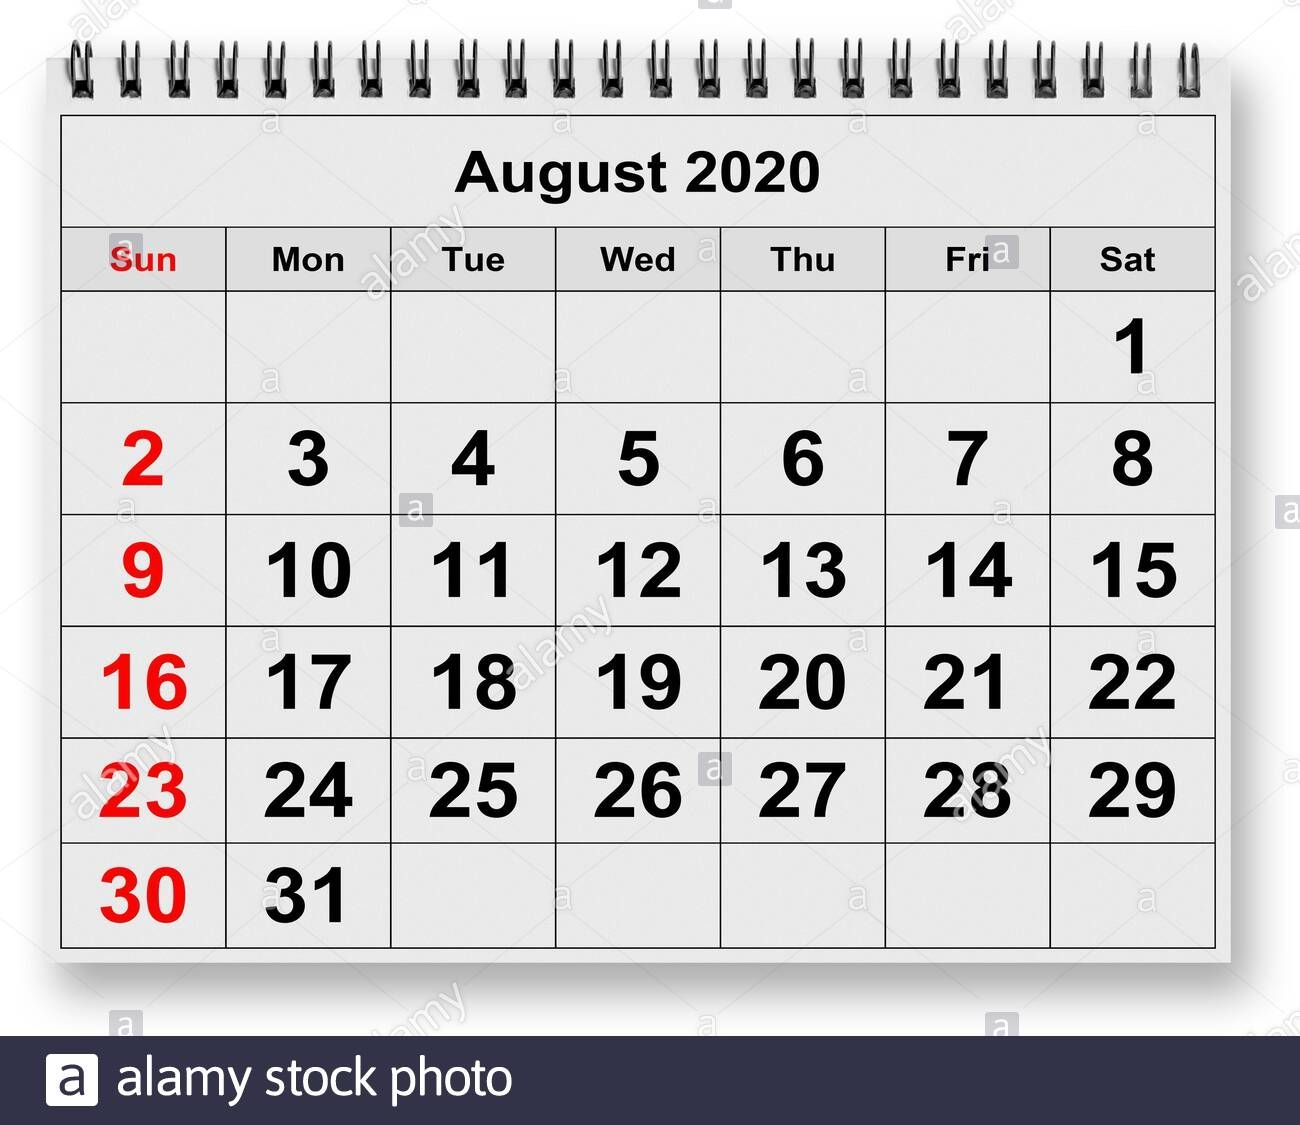 one page of the annual monthly calendar month august 2020